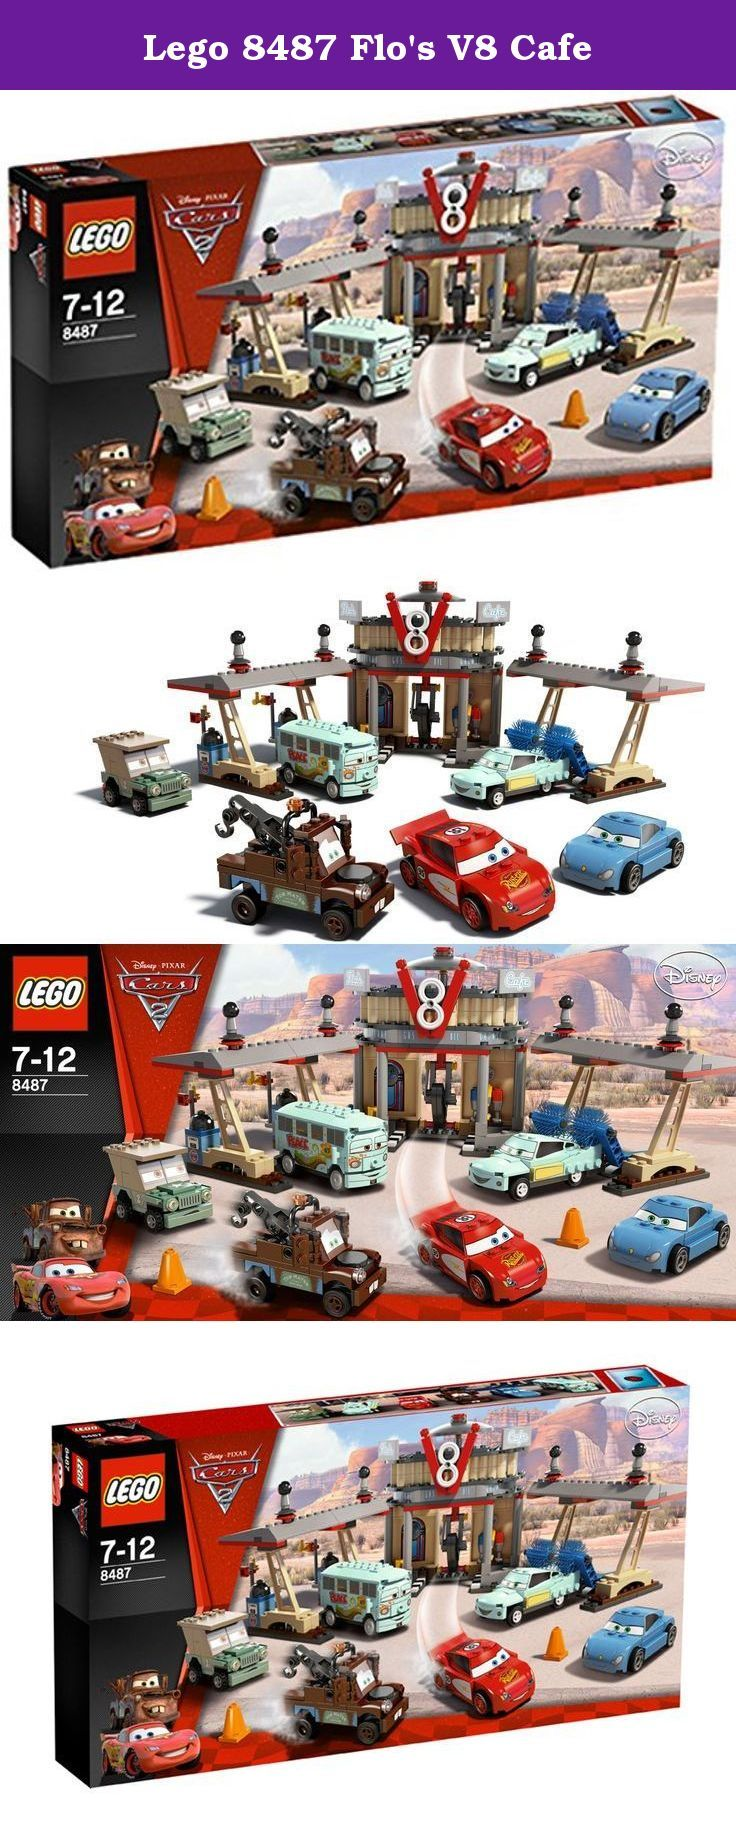 Lego 8487 Flos V8 Cafe Recreate All The Thrills Of The Cars